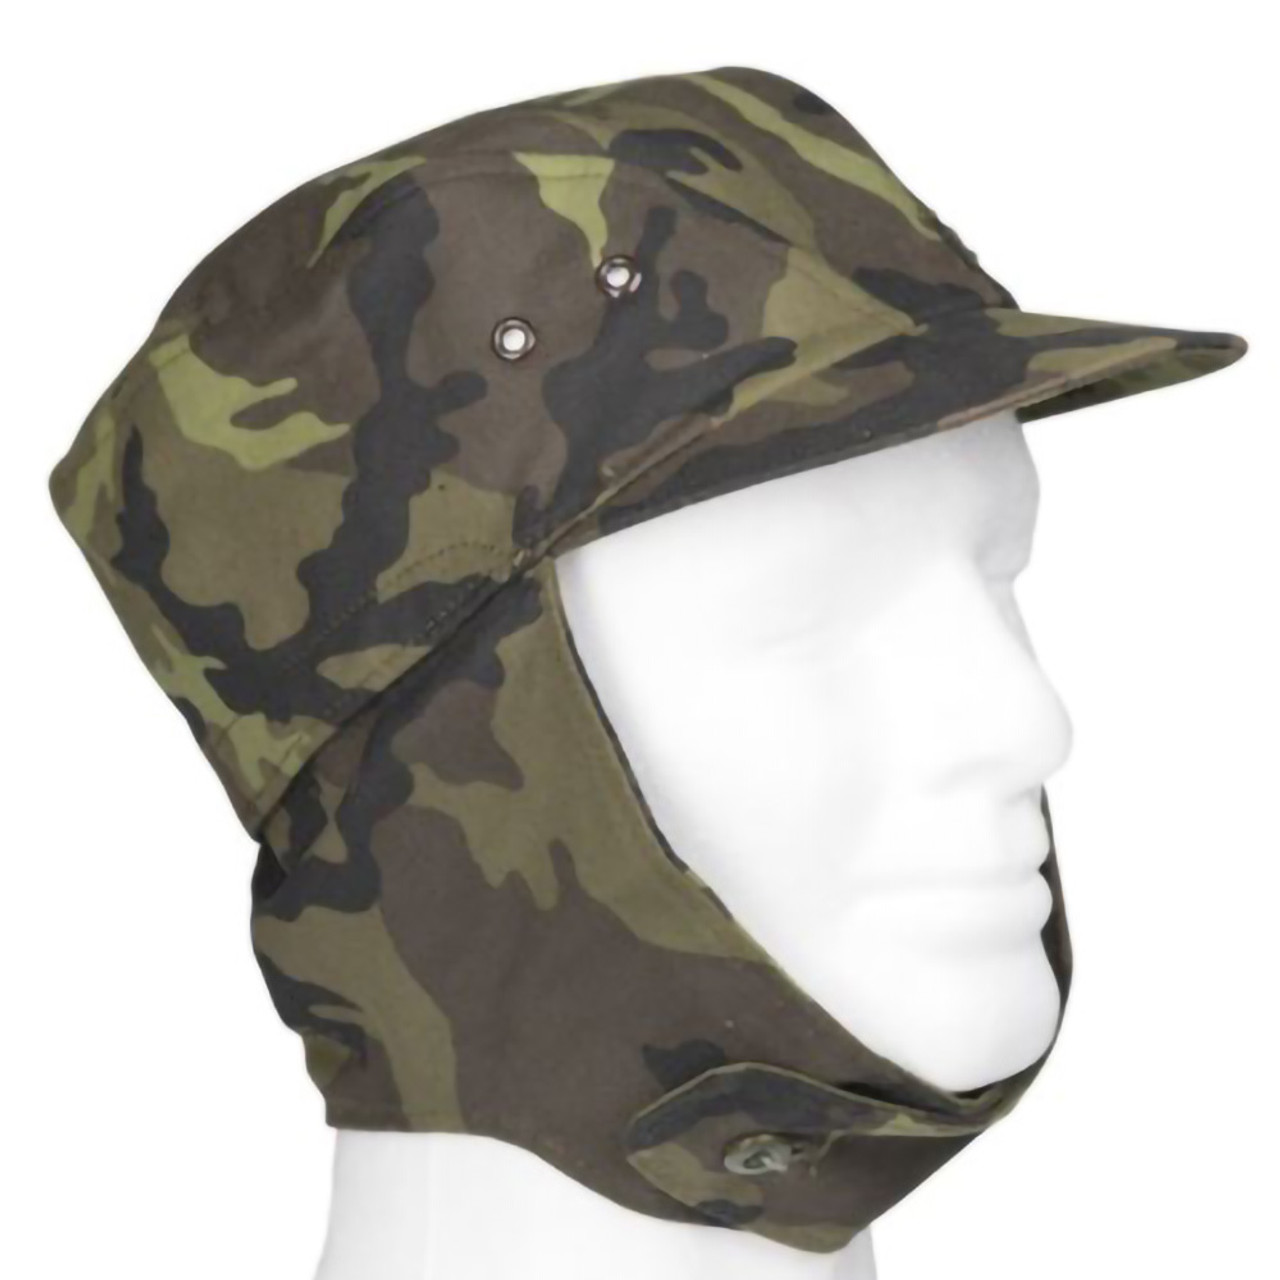 Czech M95 field cap